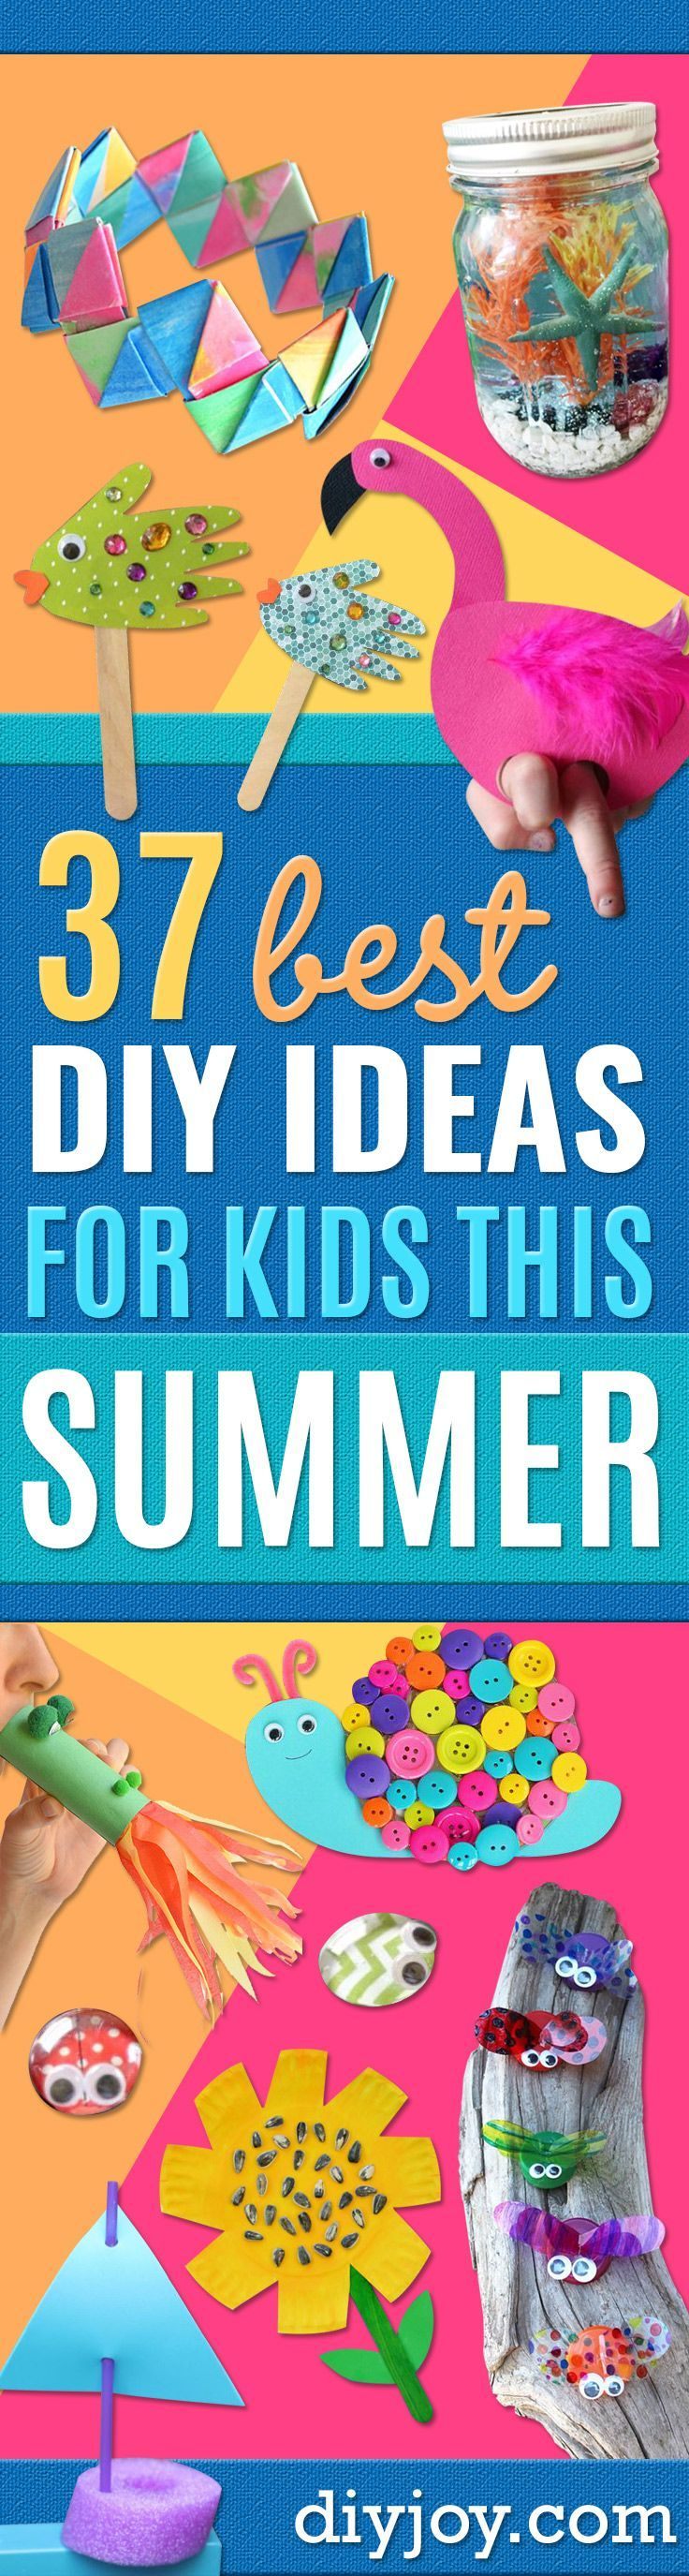 DIY Ideas for Kids To Make This Summer - Fun Crafts and Cool Projects for Boys and Girls To Make at Home - Easy and Cheap Do It Yourself Project Ideas With Paint, Glue, Paper, Glitter, Chalk and Things You Can Find Around The House - Creative Arts and Crafts Ideas for Children http://diyjoy.com/diy-ideas-kids-summer #artsandcraftsforkidstodoathome